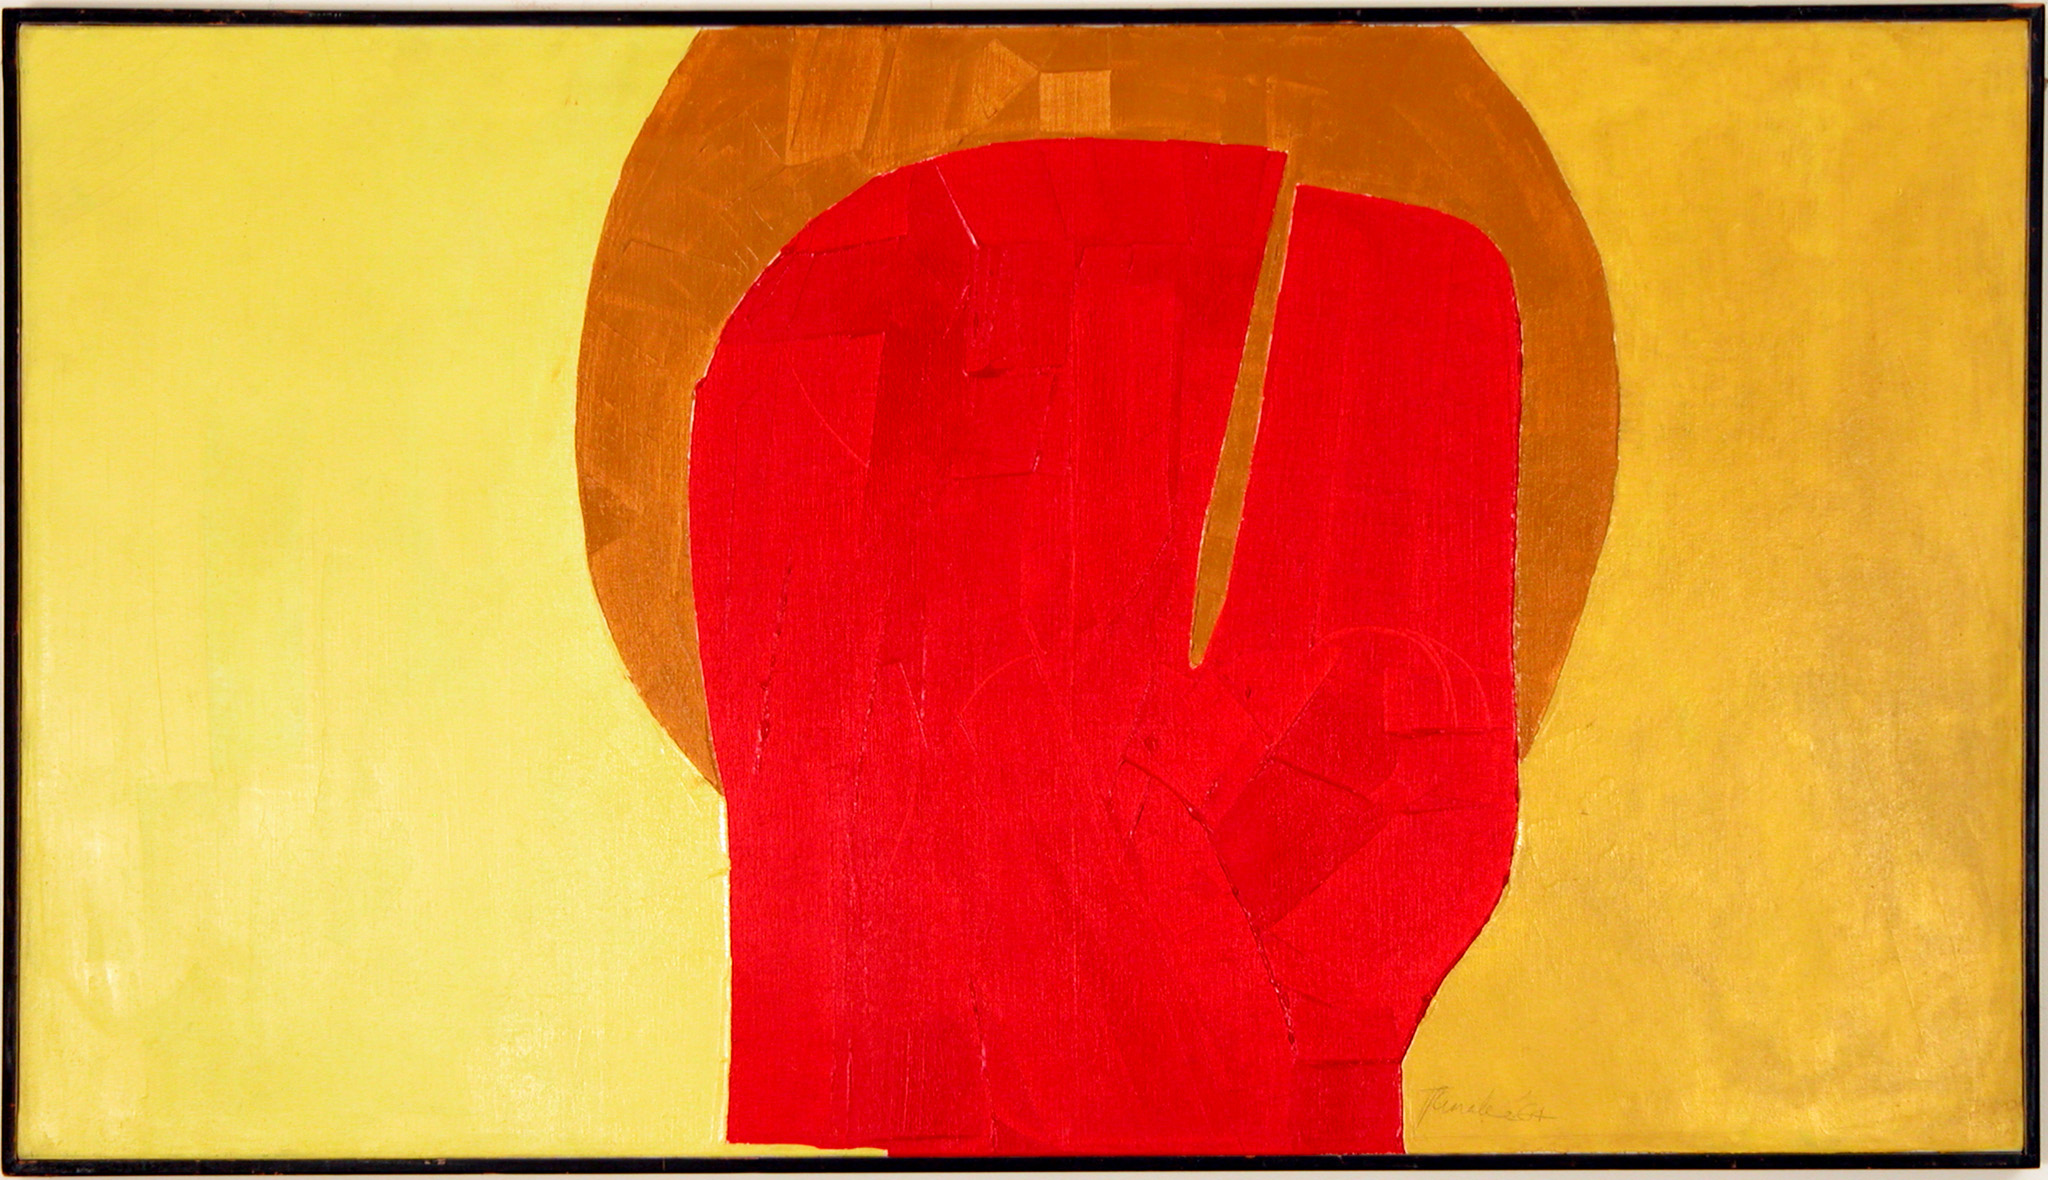 Takao Tanabe's Optimist is a horizontal canvas painted in large fields of yellow and gold with a central red shape like a head surrounded by a dark gold halo with a diagonal rift splitting the red shape